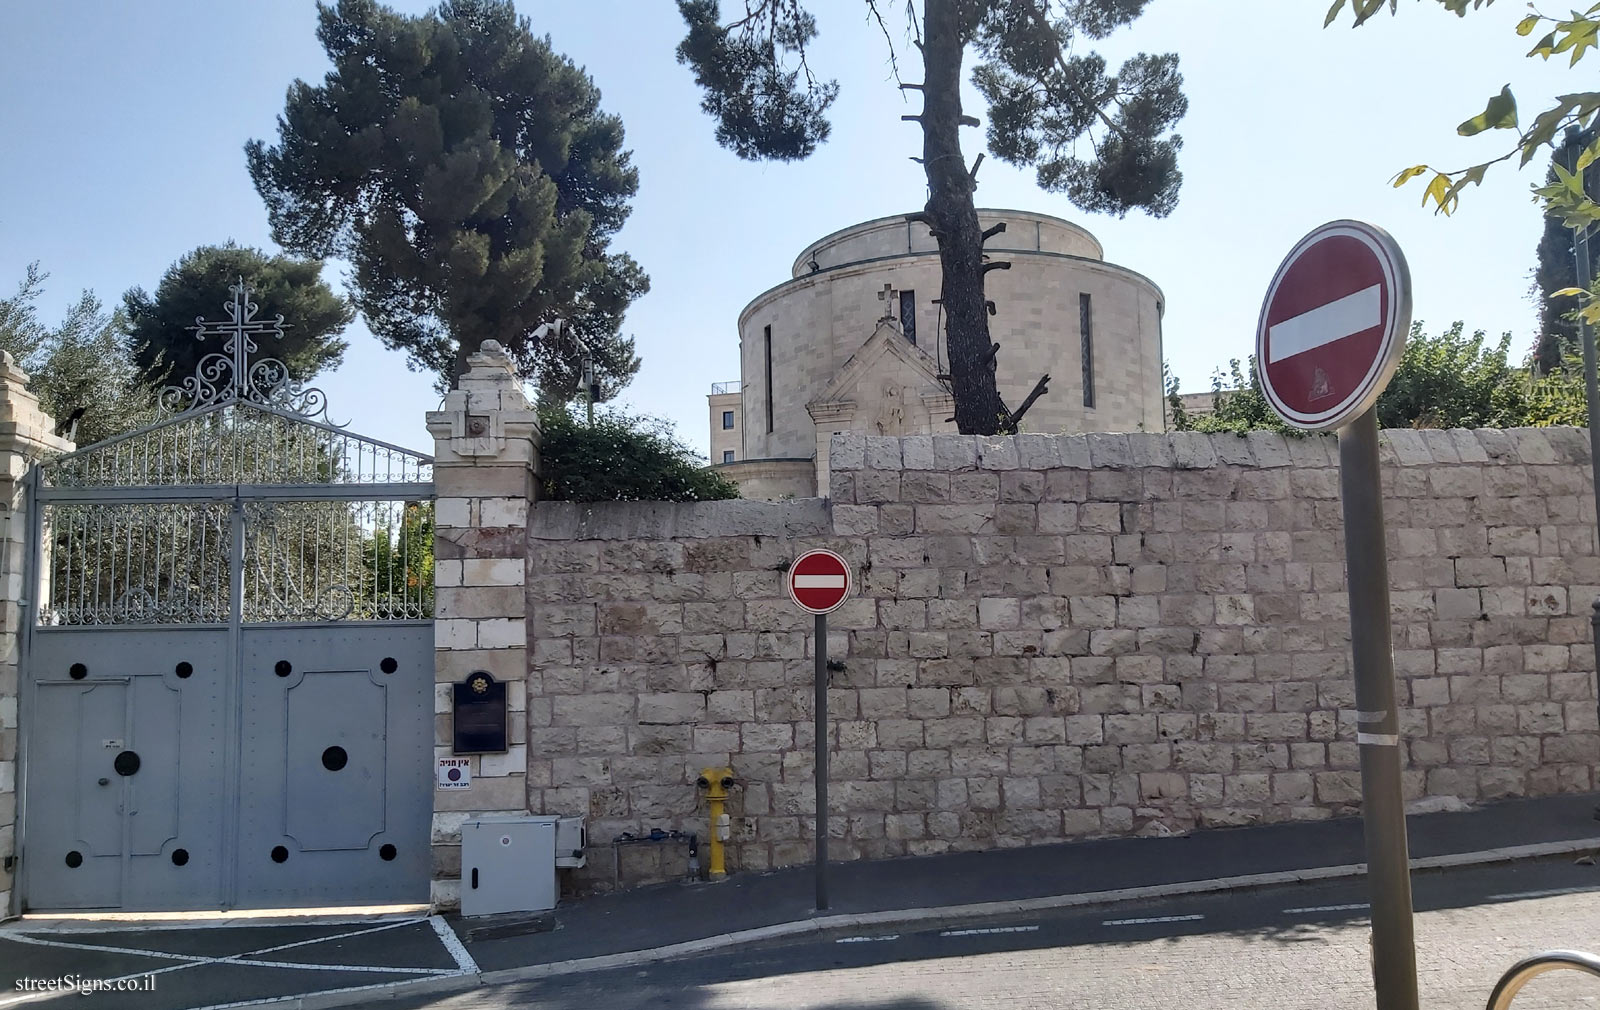 Jerusalem - The Built Heritage - Convent of the Sisters of the Rosary - Gershon Agron St 14, Jerusalem, Israel